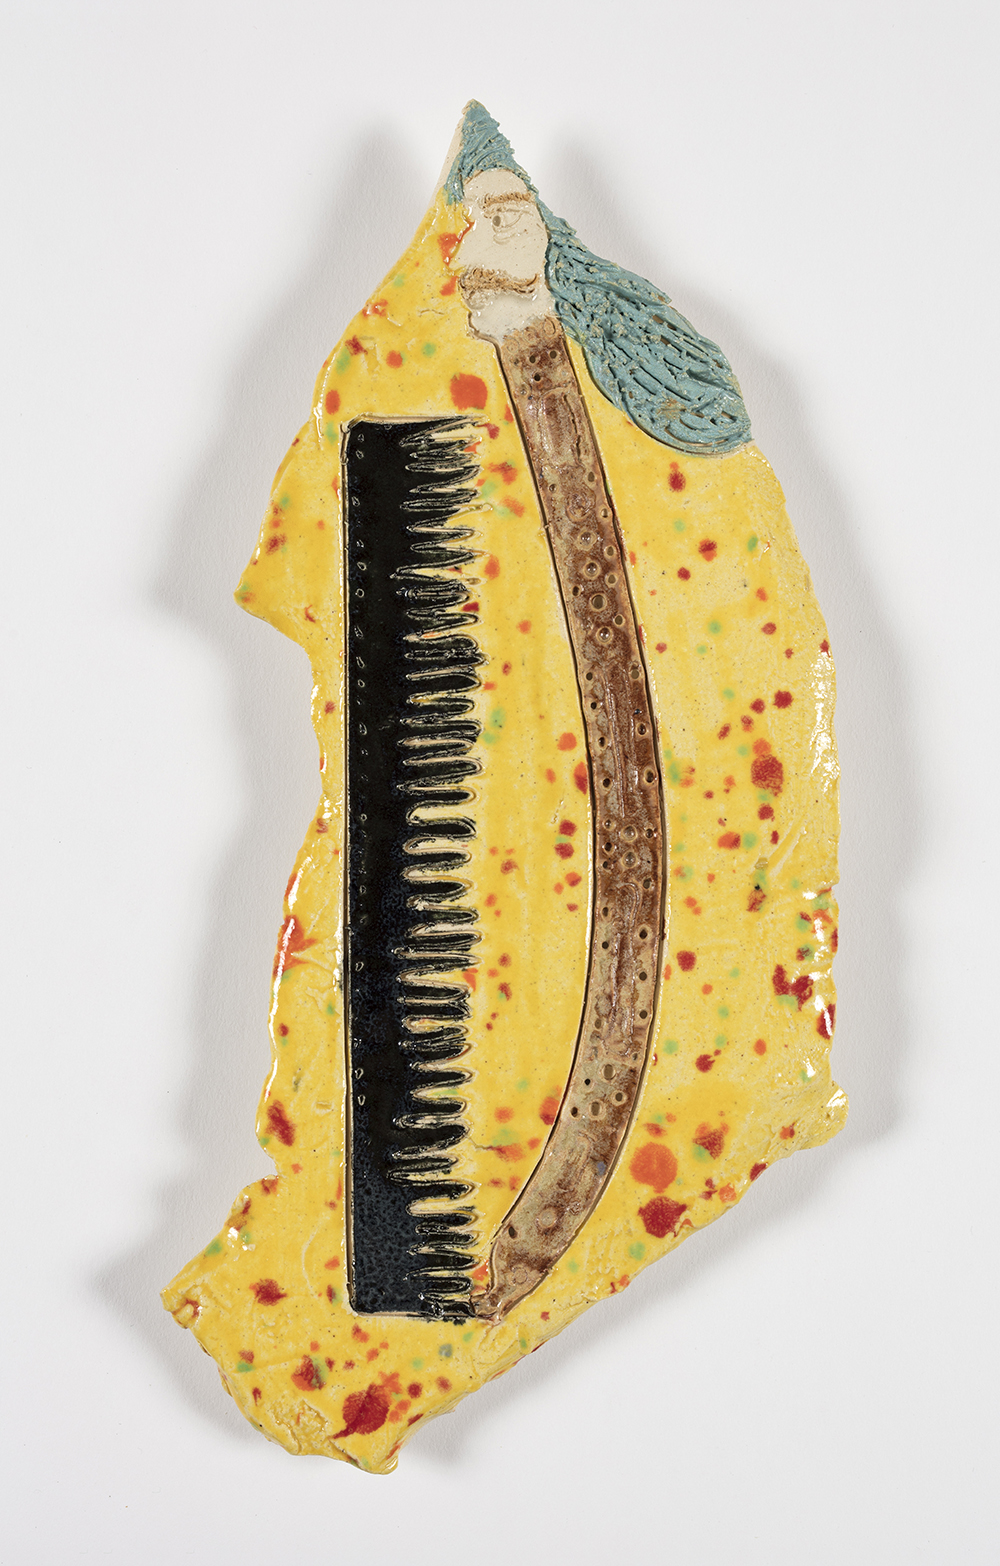 Kevin McNamee-Tweed.<em> Untitled (Comb)</em>, 2019. Glazed ceramic, 9 3/4 x 5 inches (24.8 x 12.7 cm)